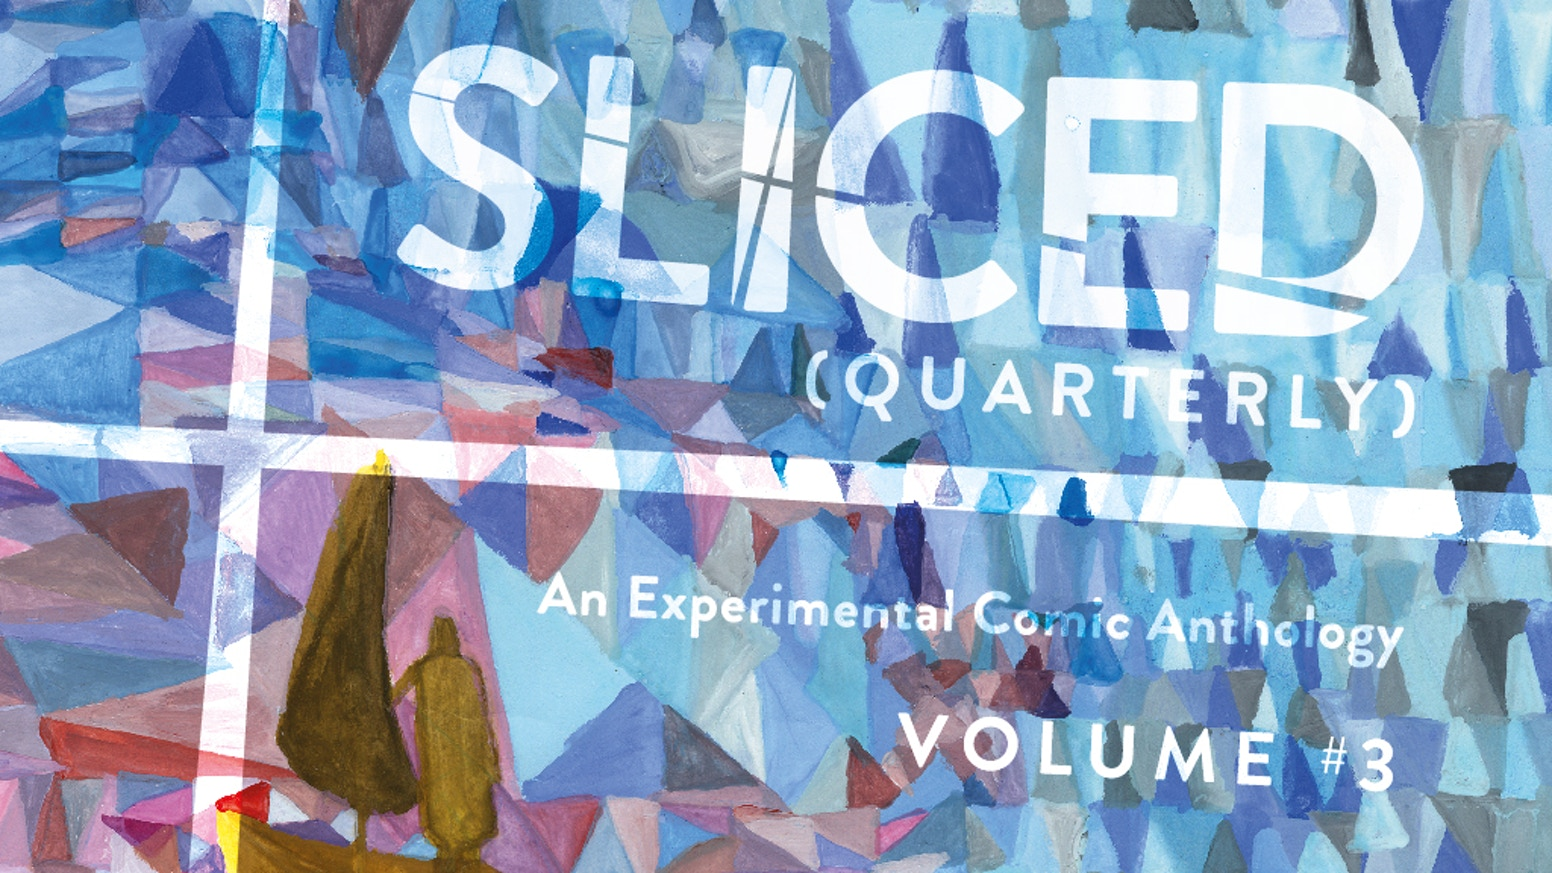 Sliced Quarterly Vol. 3 collects issues #9-12 of the experimental comic anthology. Featuring simple stories told in extraordinary ways.